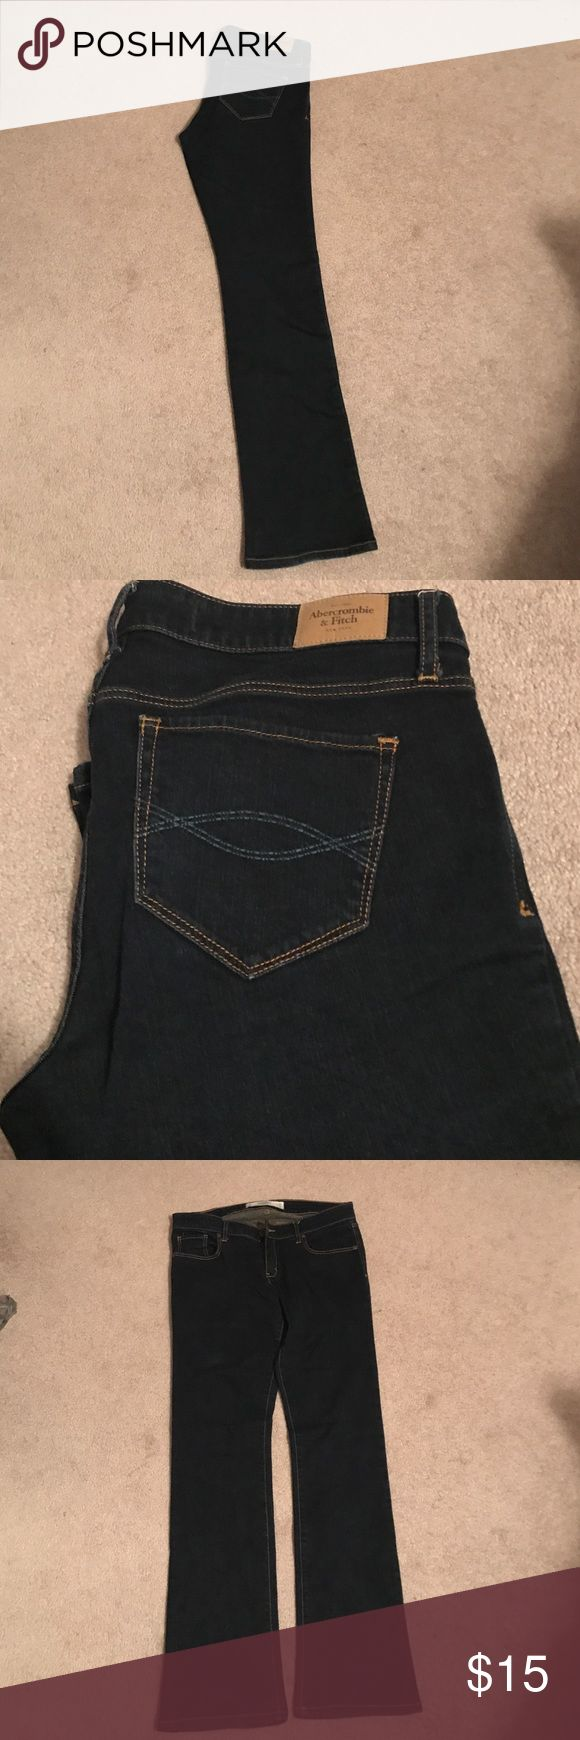 Abercrombie and fitch jeans Dark wash Abercrombie and Fitch boot cut jeans. Excellent condition from a non smoking and pet free home. Perfect for work or play. Abercrombie & Fitch Jeans Boot Cut